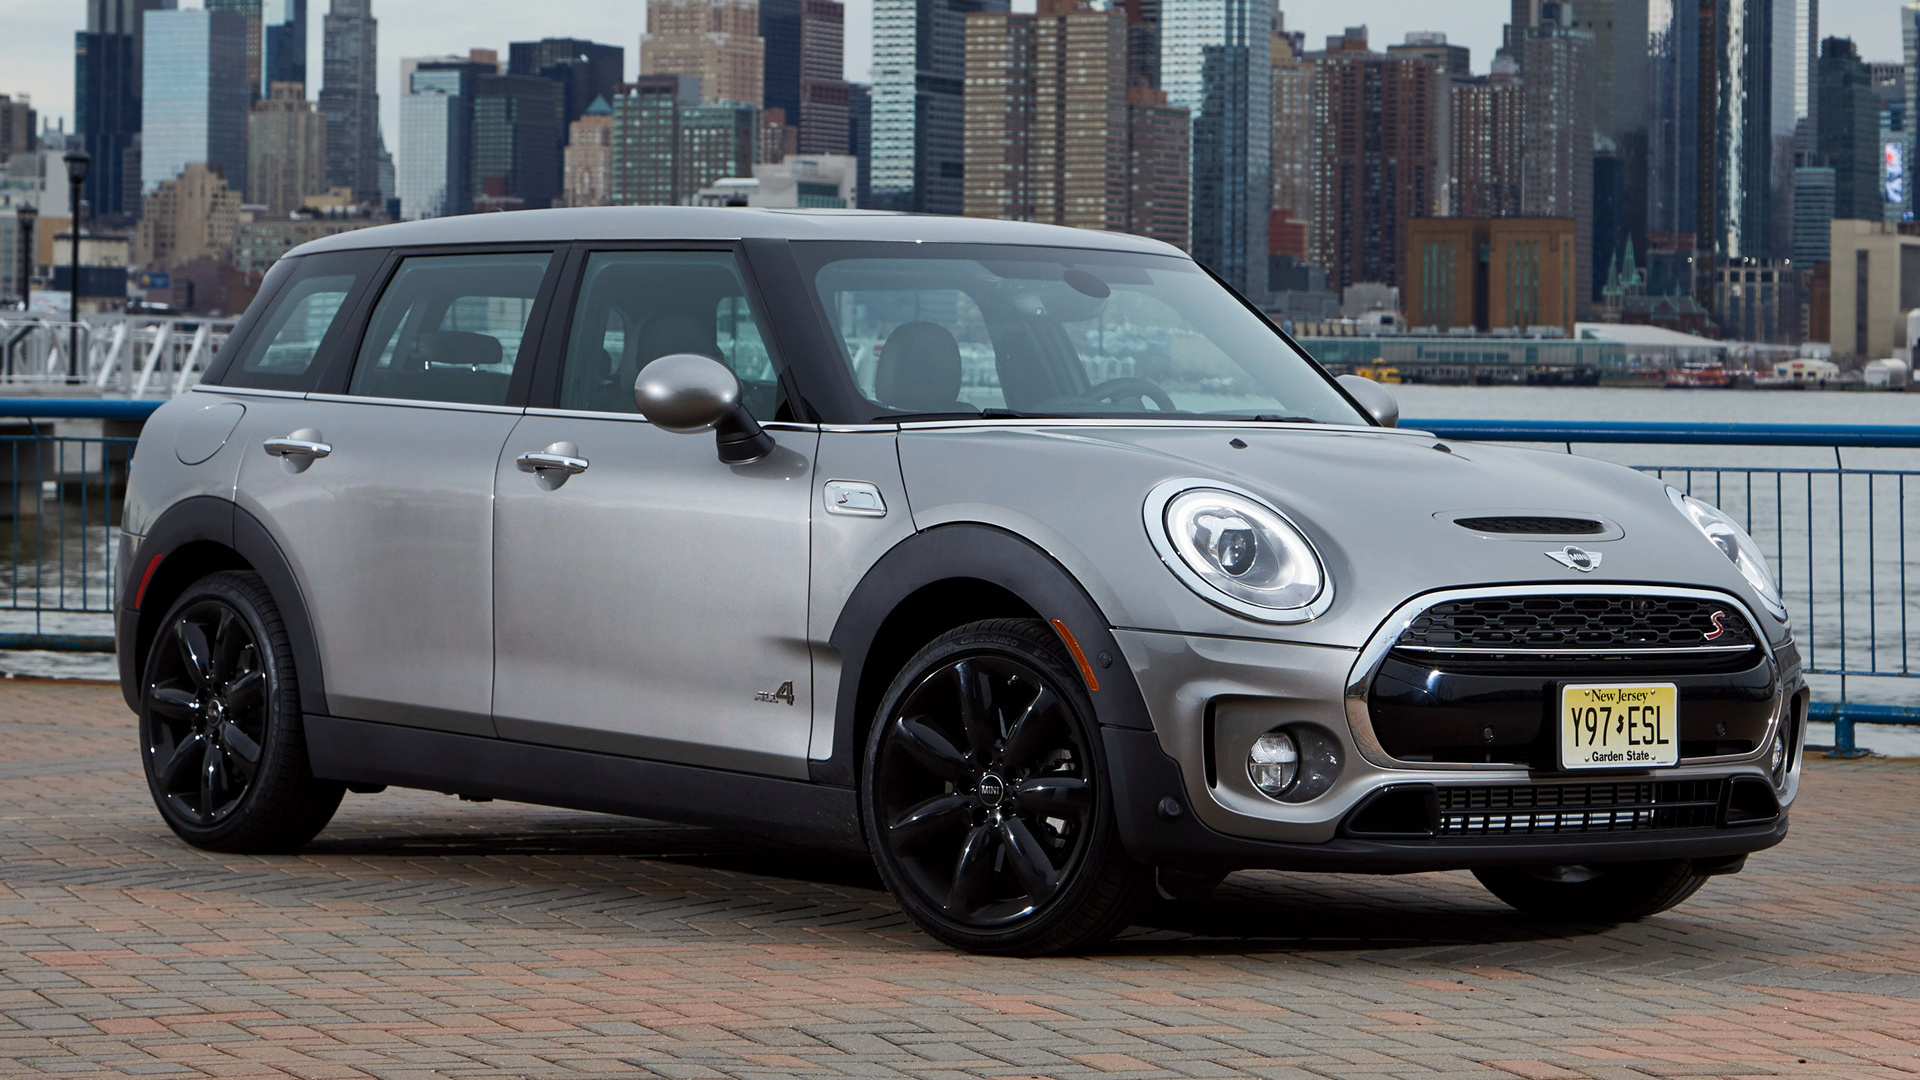 mini cooper s clubman 2017 us wallpapers and hd images. Black Bedroom Furniture Sets. Home Design Ideas